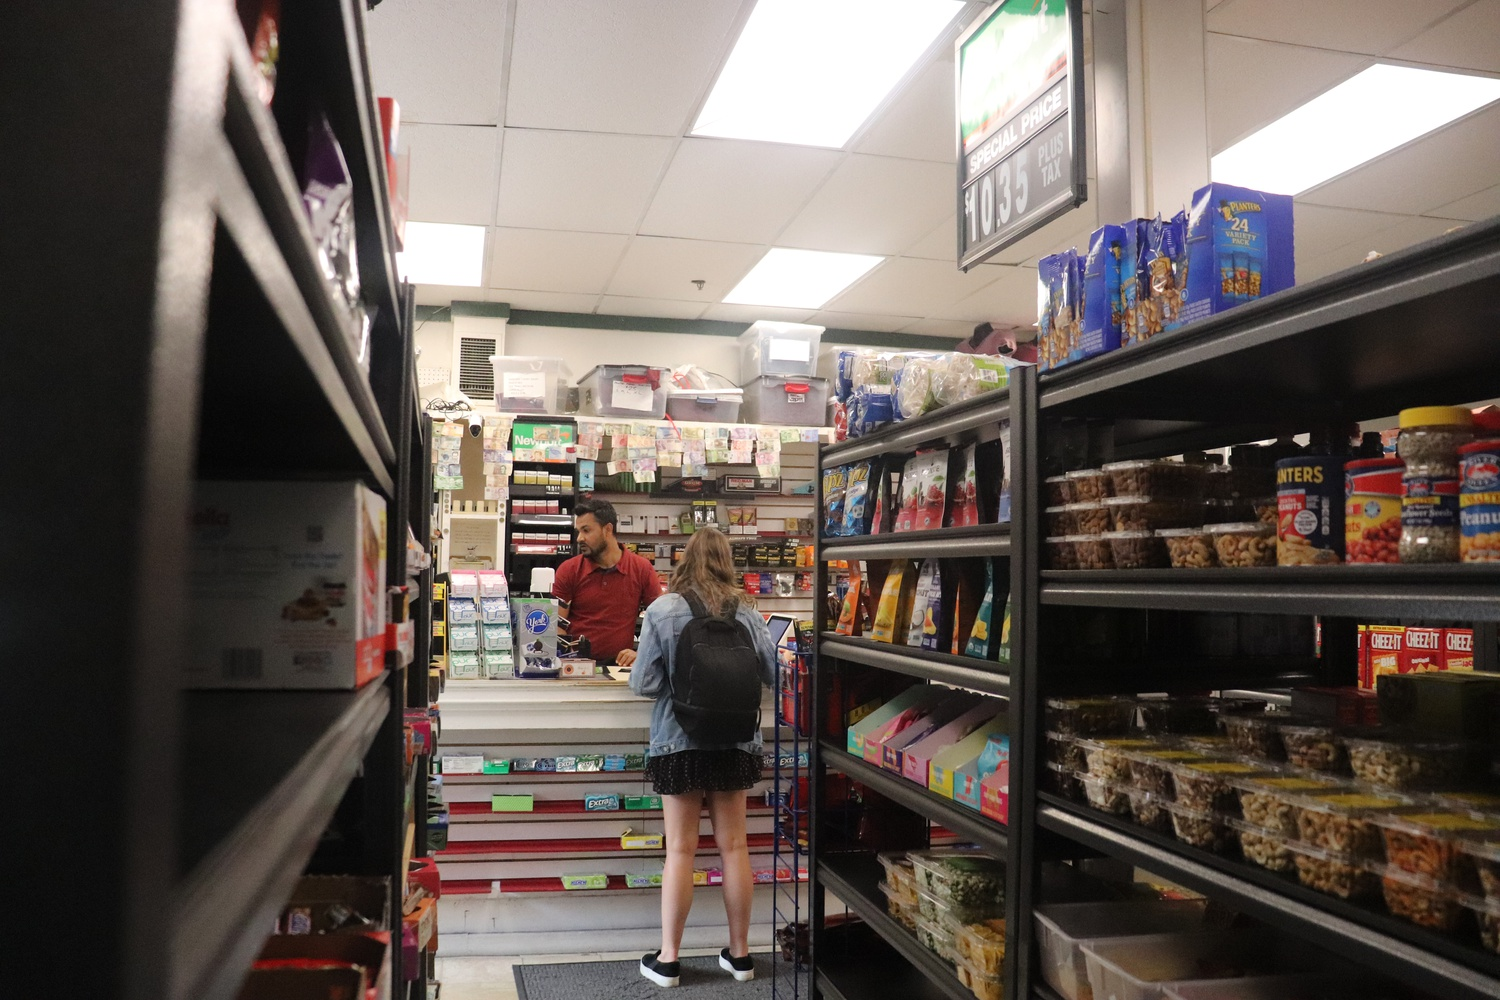 Harvard Square convenience store Tommy's Value reopened earlier this month after closing at the onset of the Covid-19 pandemic.